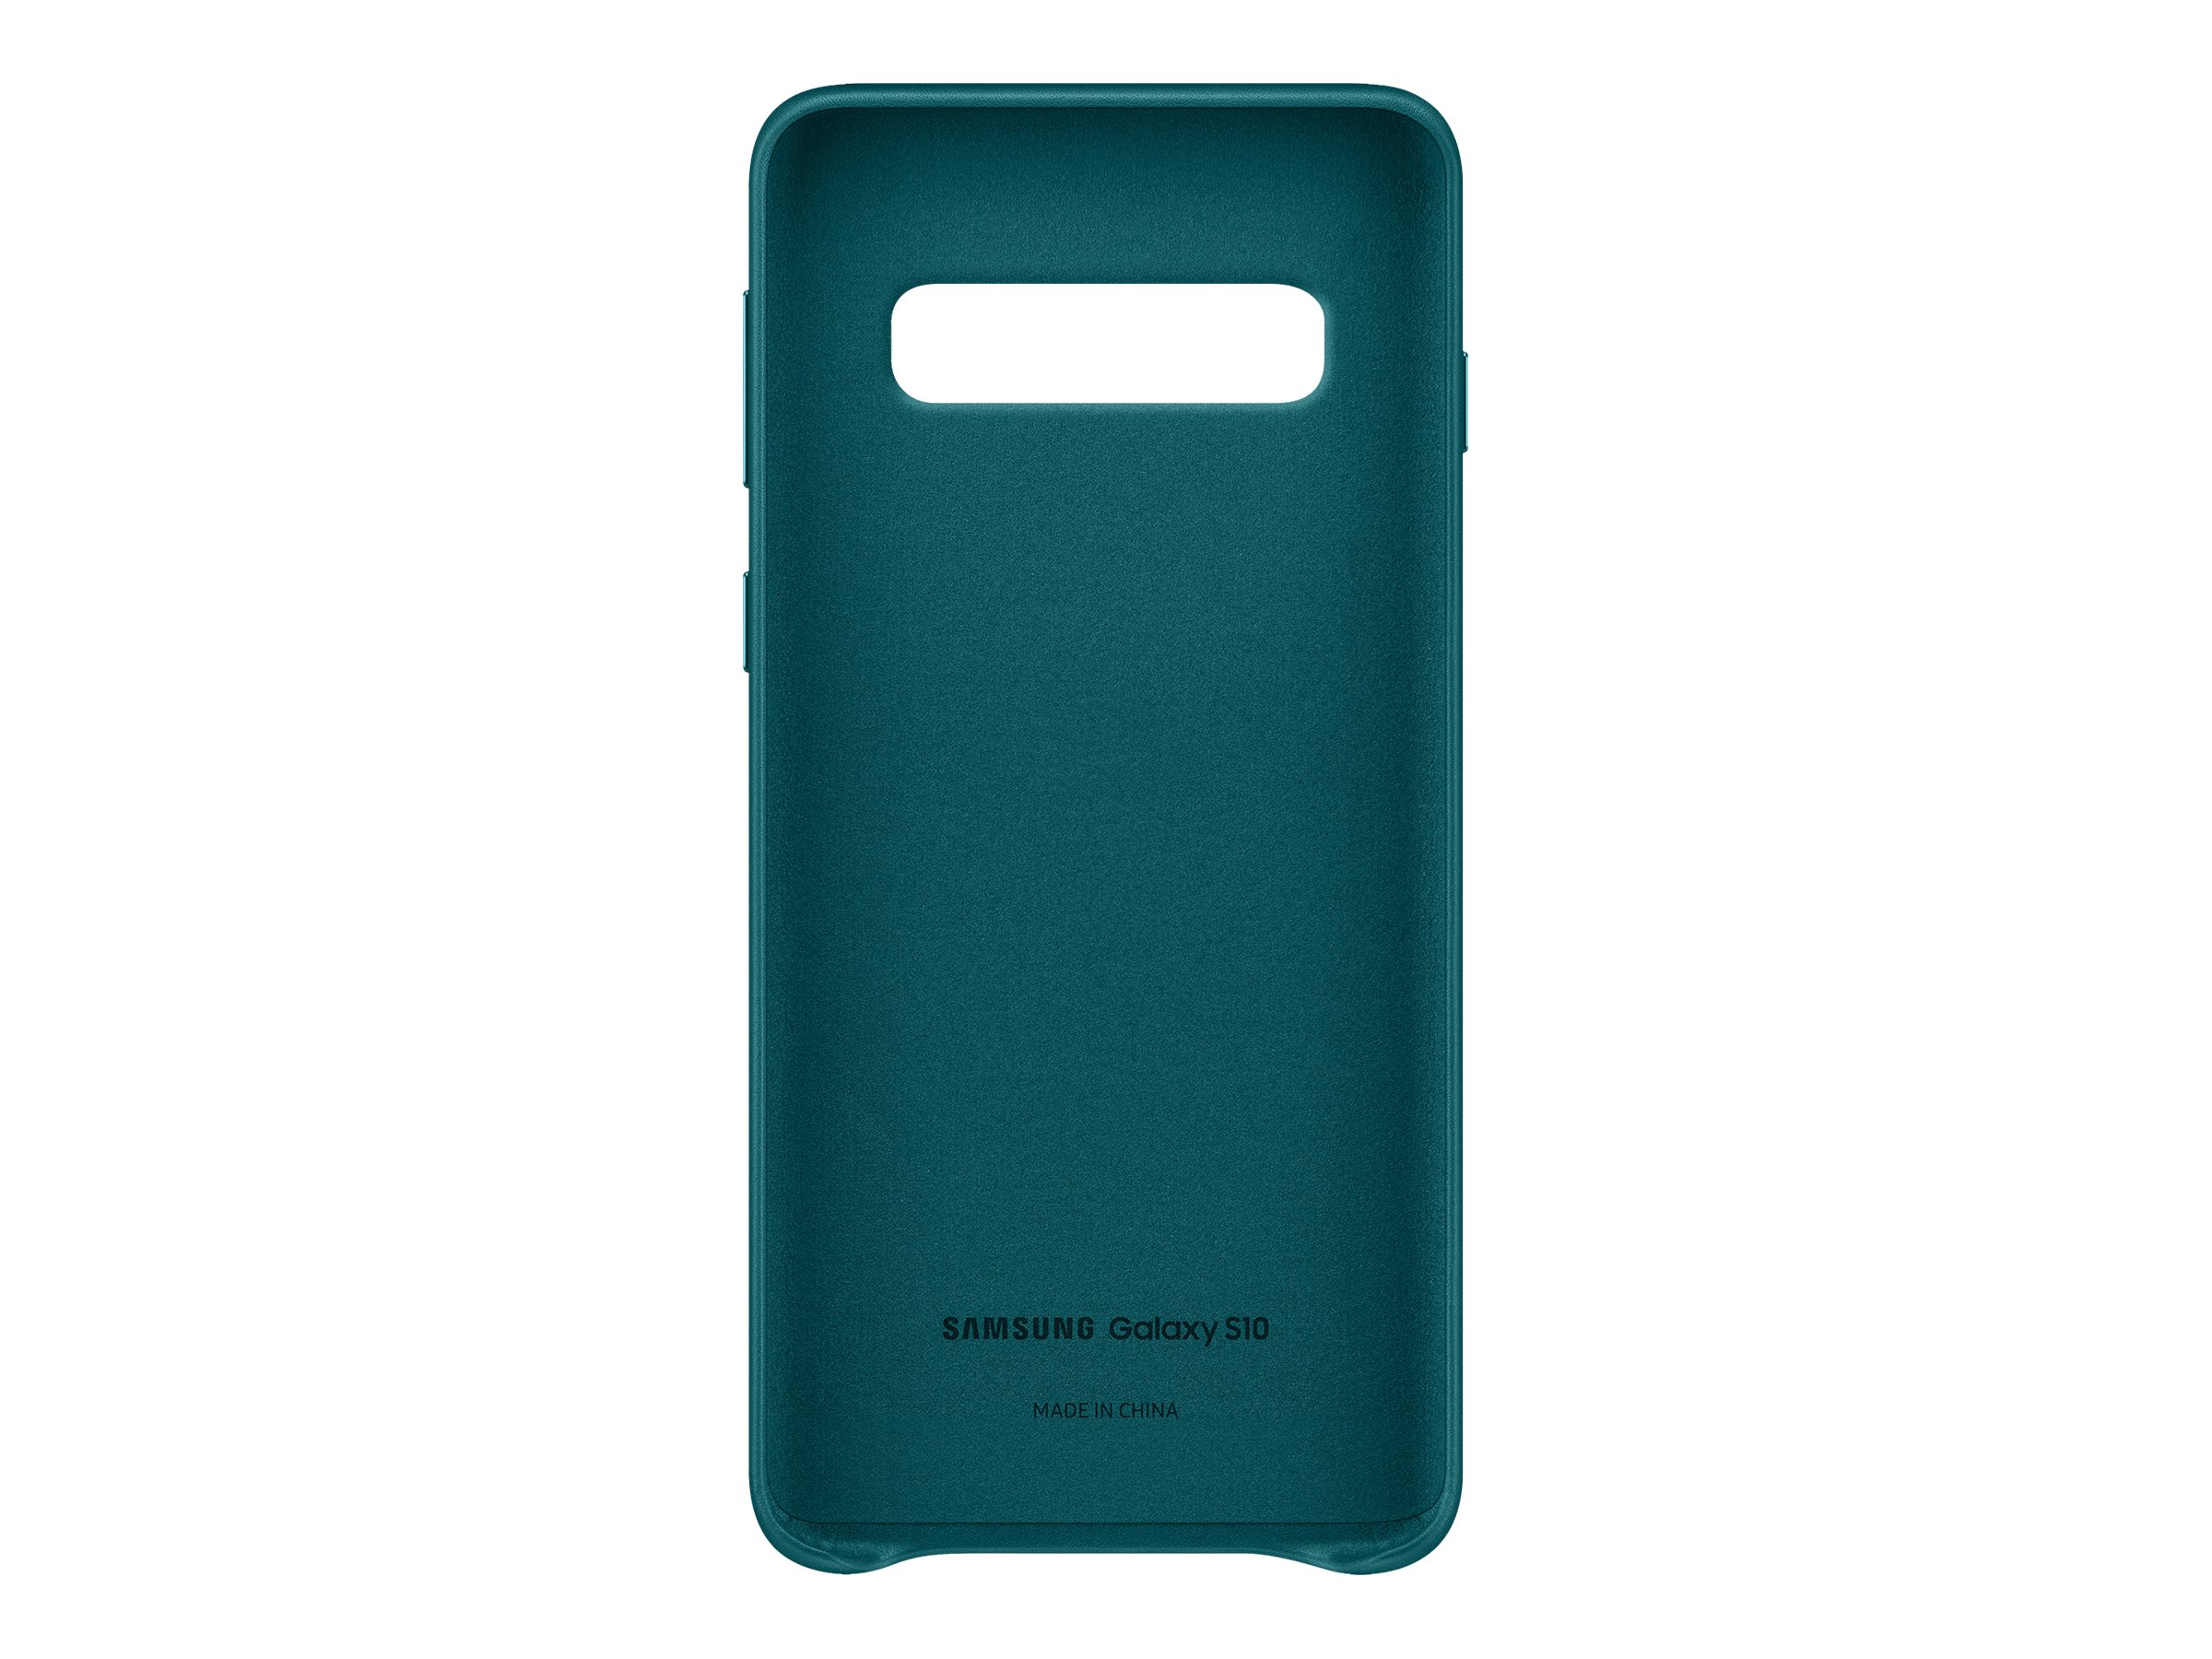 Samsung Leather Cover EF-VG973 - back cover for cell phone